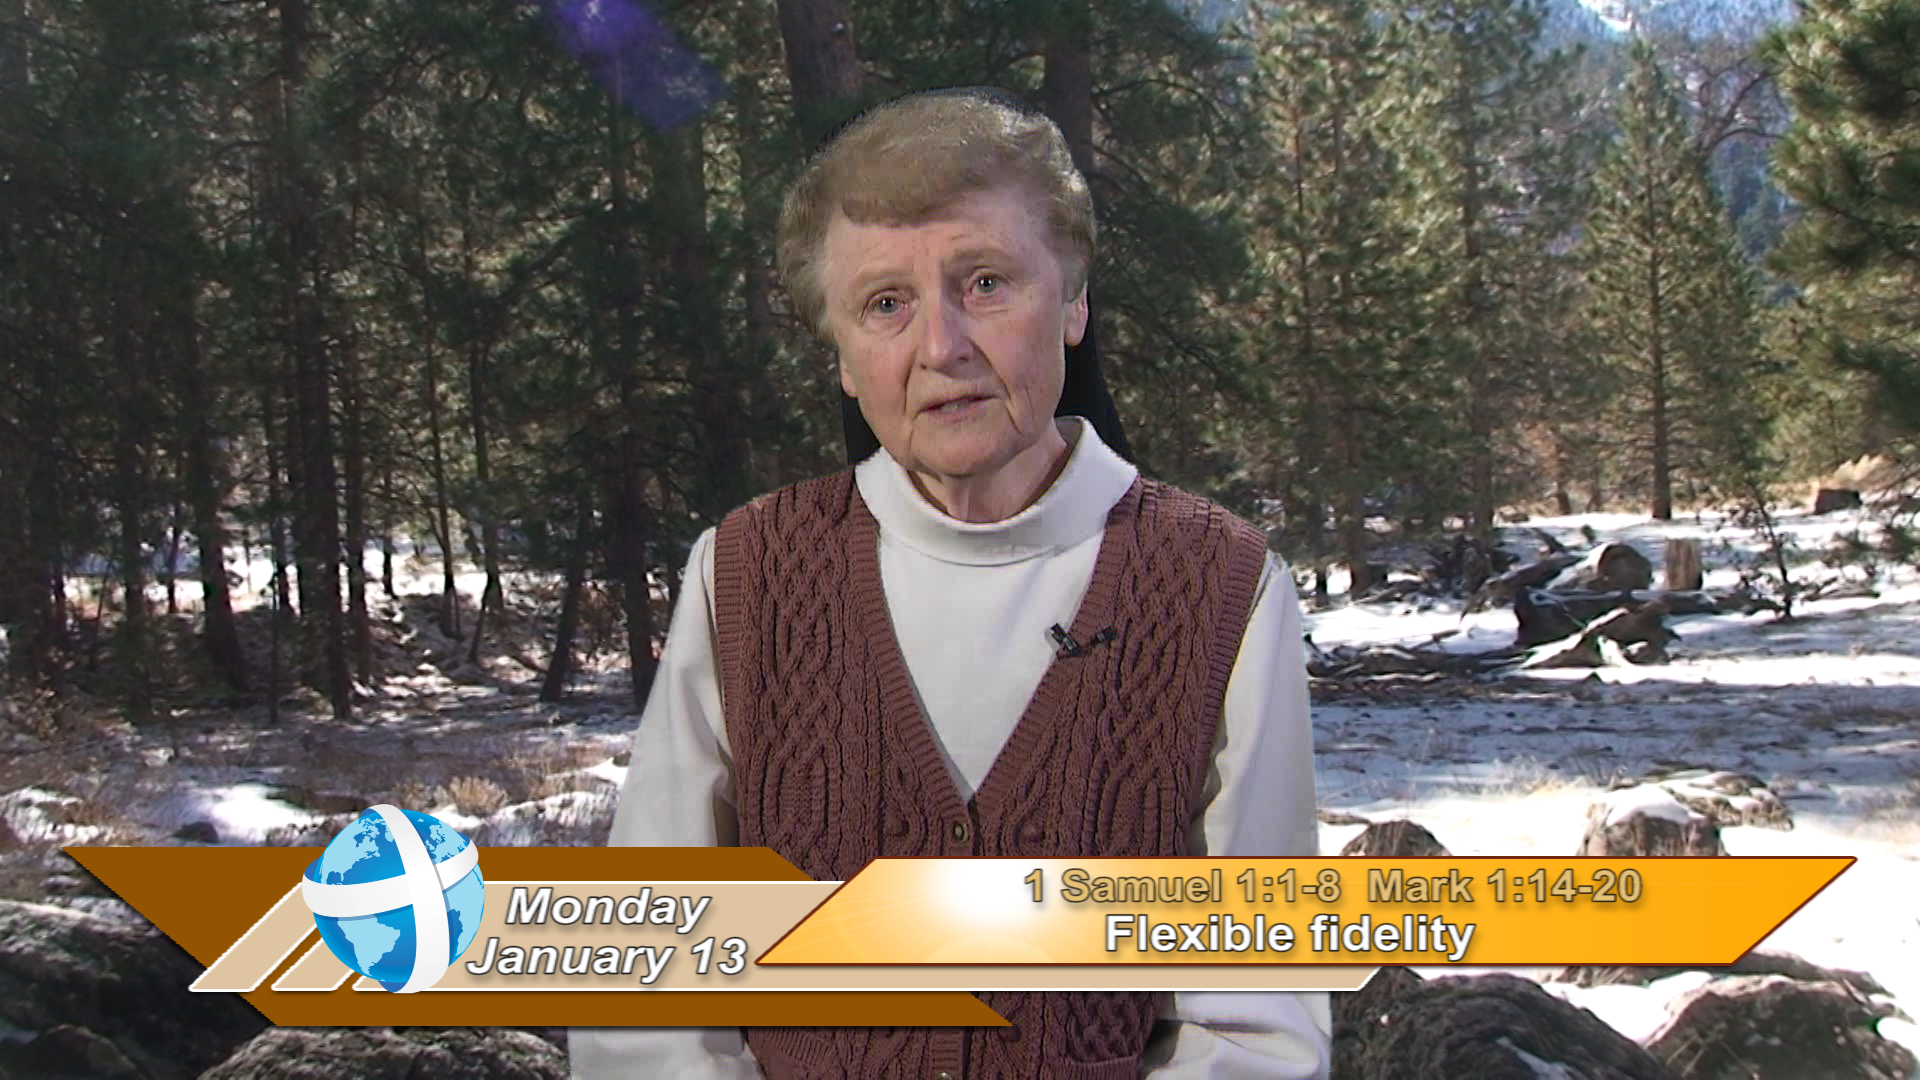 Artwork for iGod Today with Sr. Jeanne Harris, OP; Today's topic:  Flexible fidelity